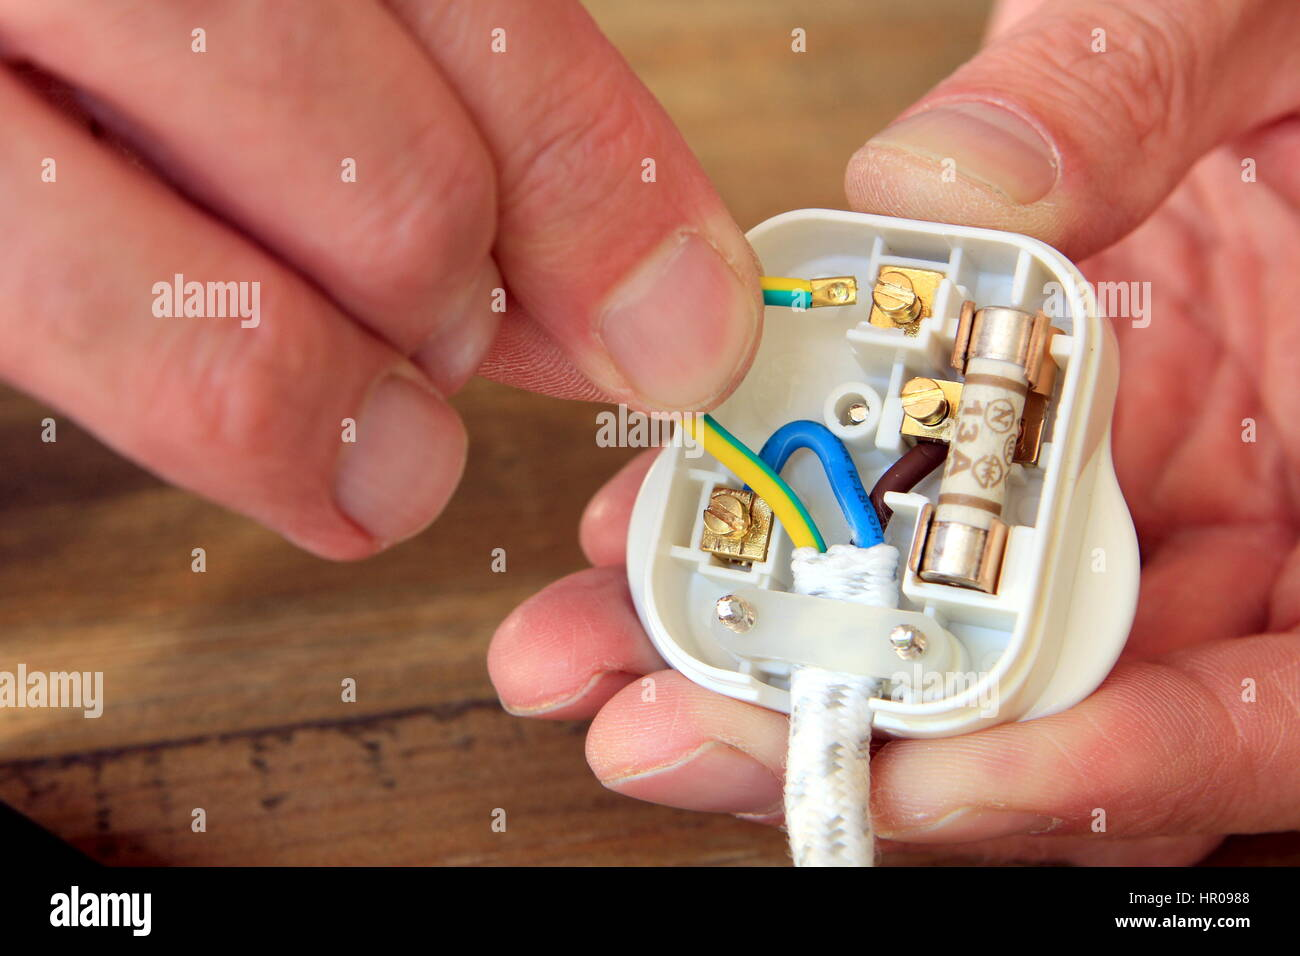 For 13 Amp Plug Stock Photos Images Alamy Rewiring A European To Us Uk Domestic Electric Image